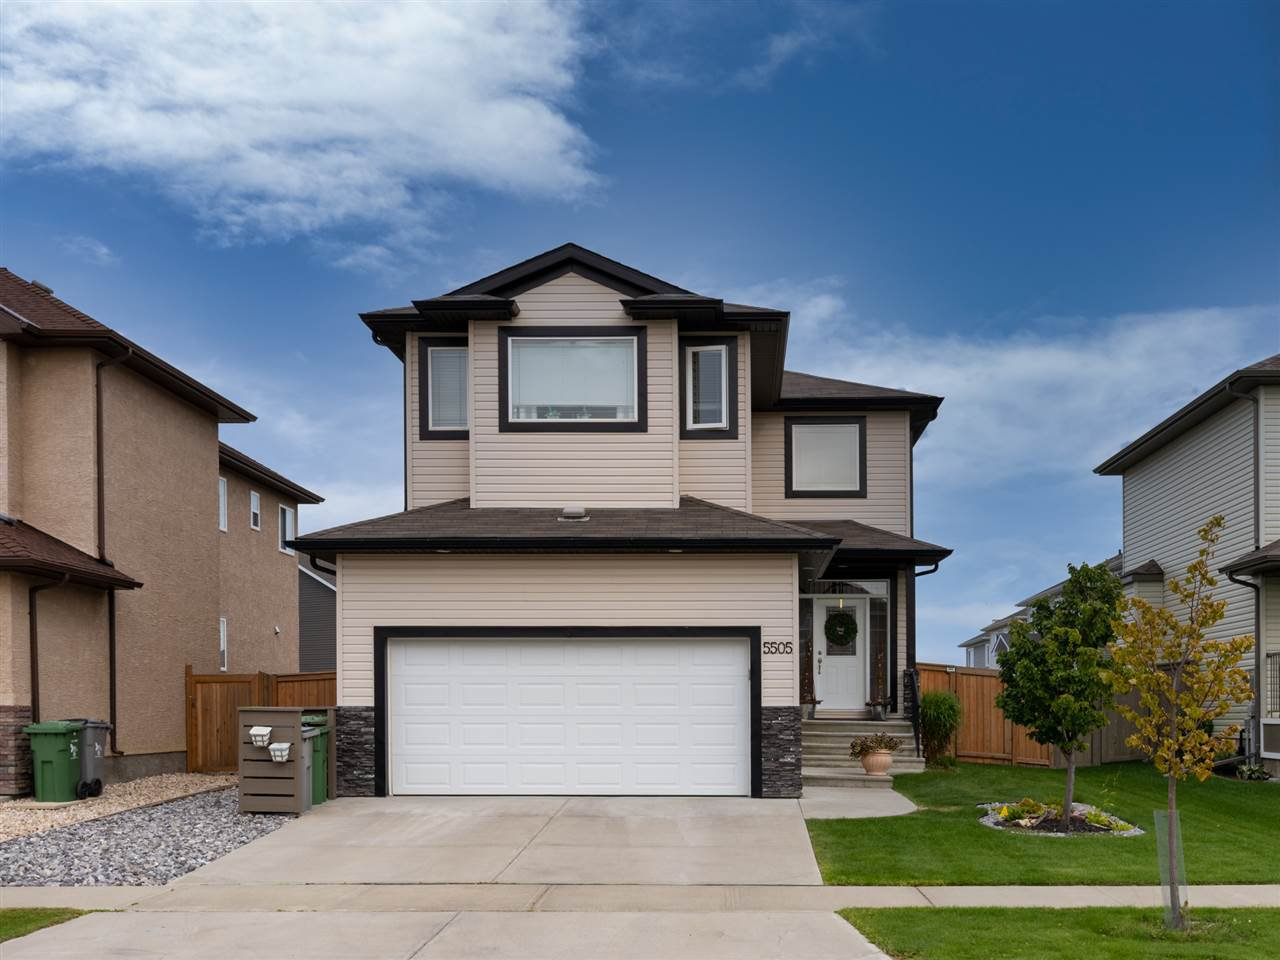 Main Photo: 5505 42 Street: Beaumont House for sale : MLS®# E4213073